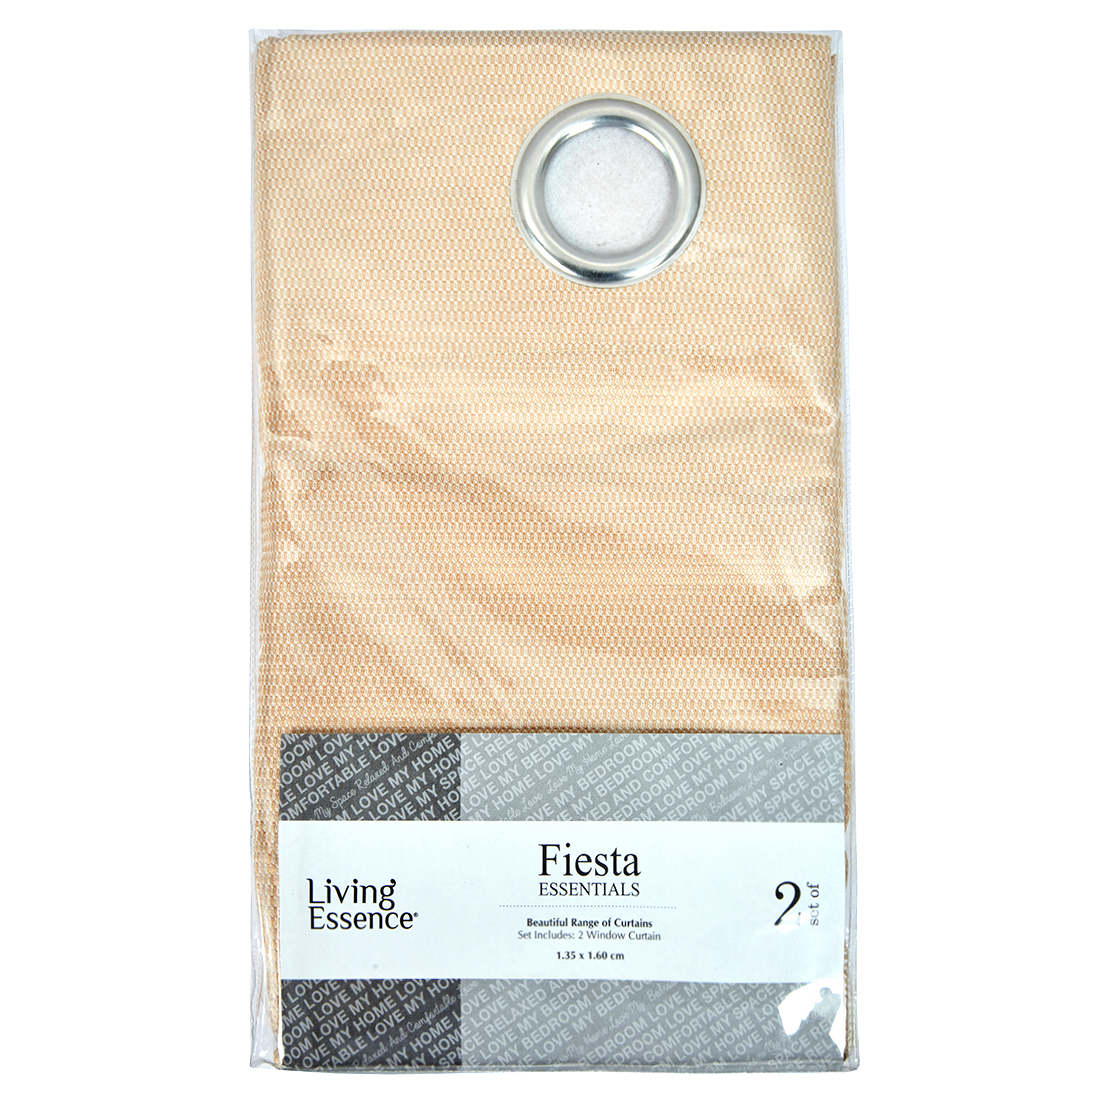 Fiesta Essential Polyester Window Curtains in Beige Colour by Living Essence